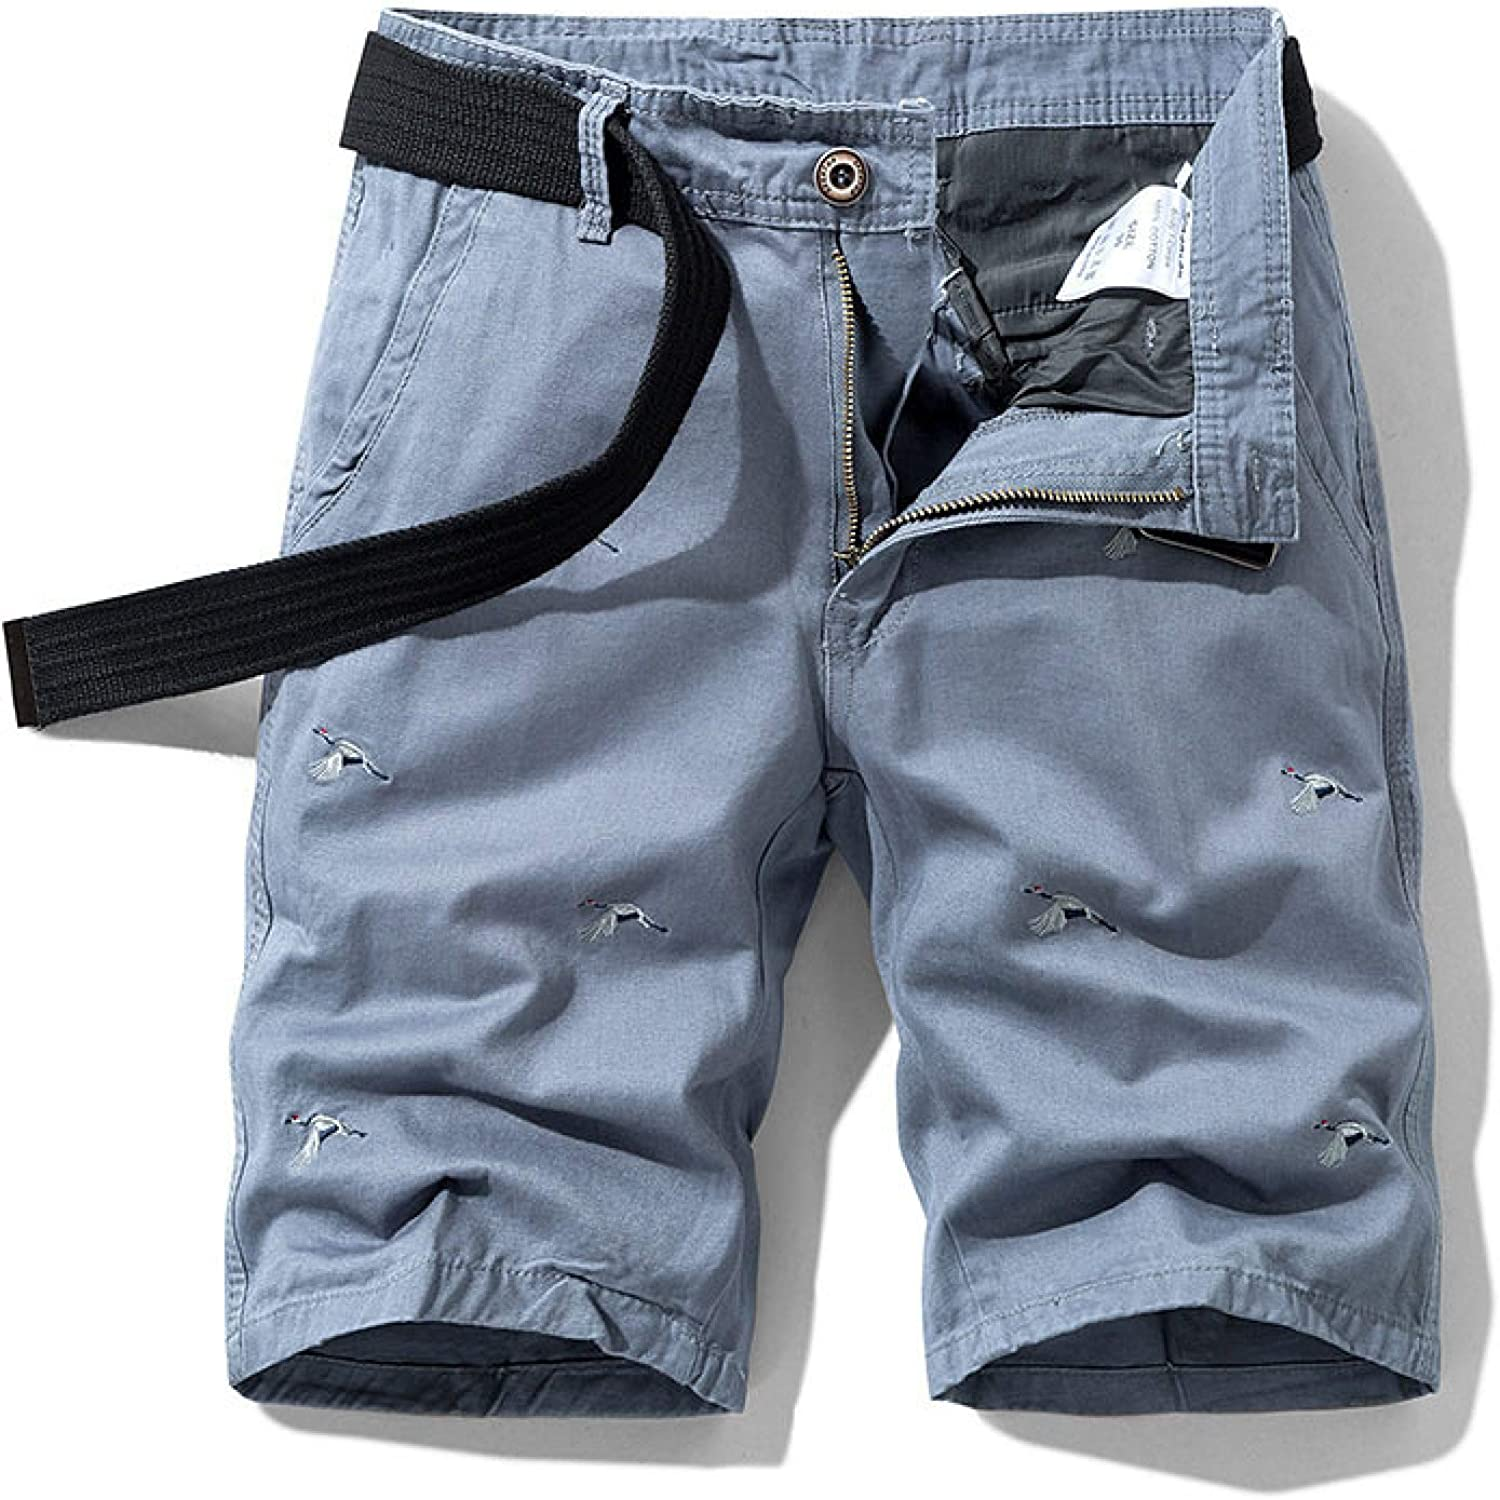 Wantess Men's Cargo Shorts Summer Fashion Trend Embroidery Loose Comfortable Breathable